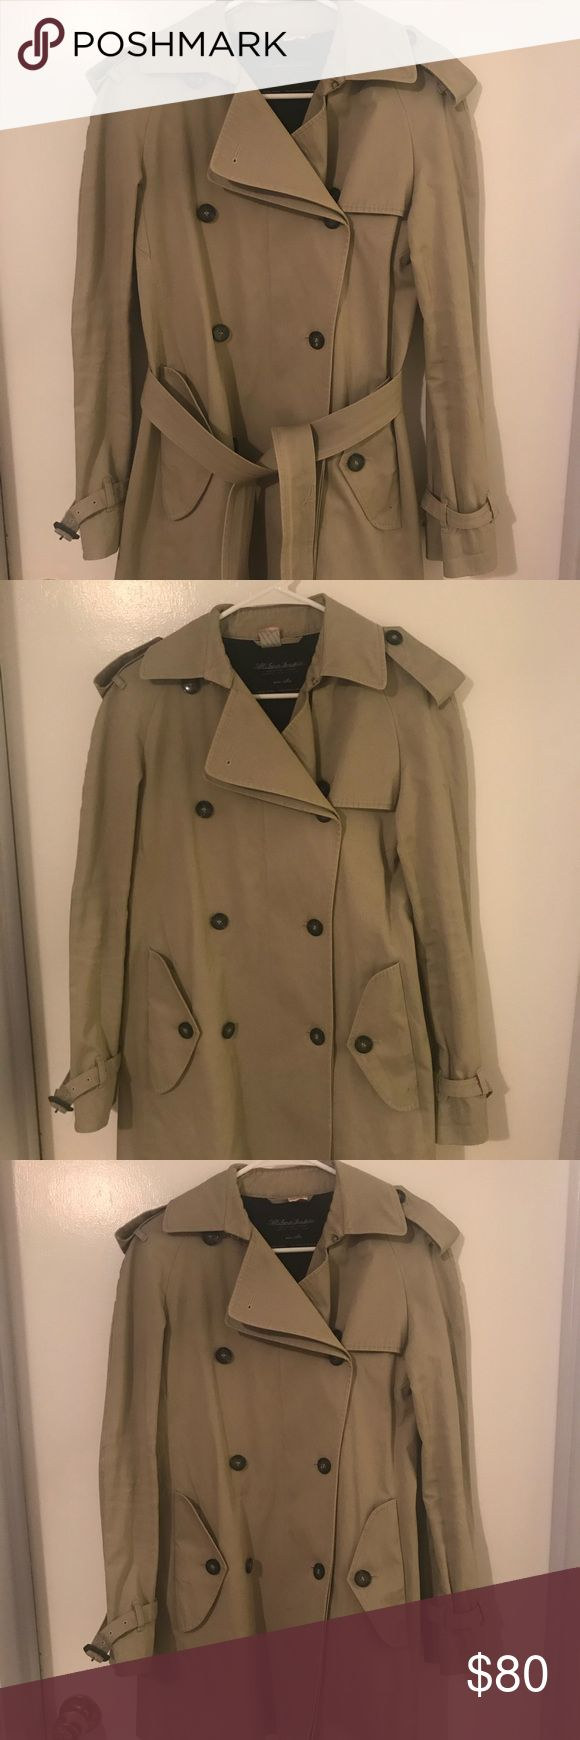 Trench coat Tan trench coat, great condition. Dry cleaned. All Saints Jackets & Coats Trench Coats